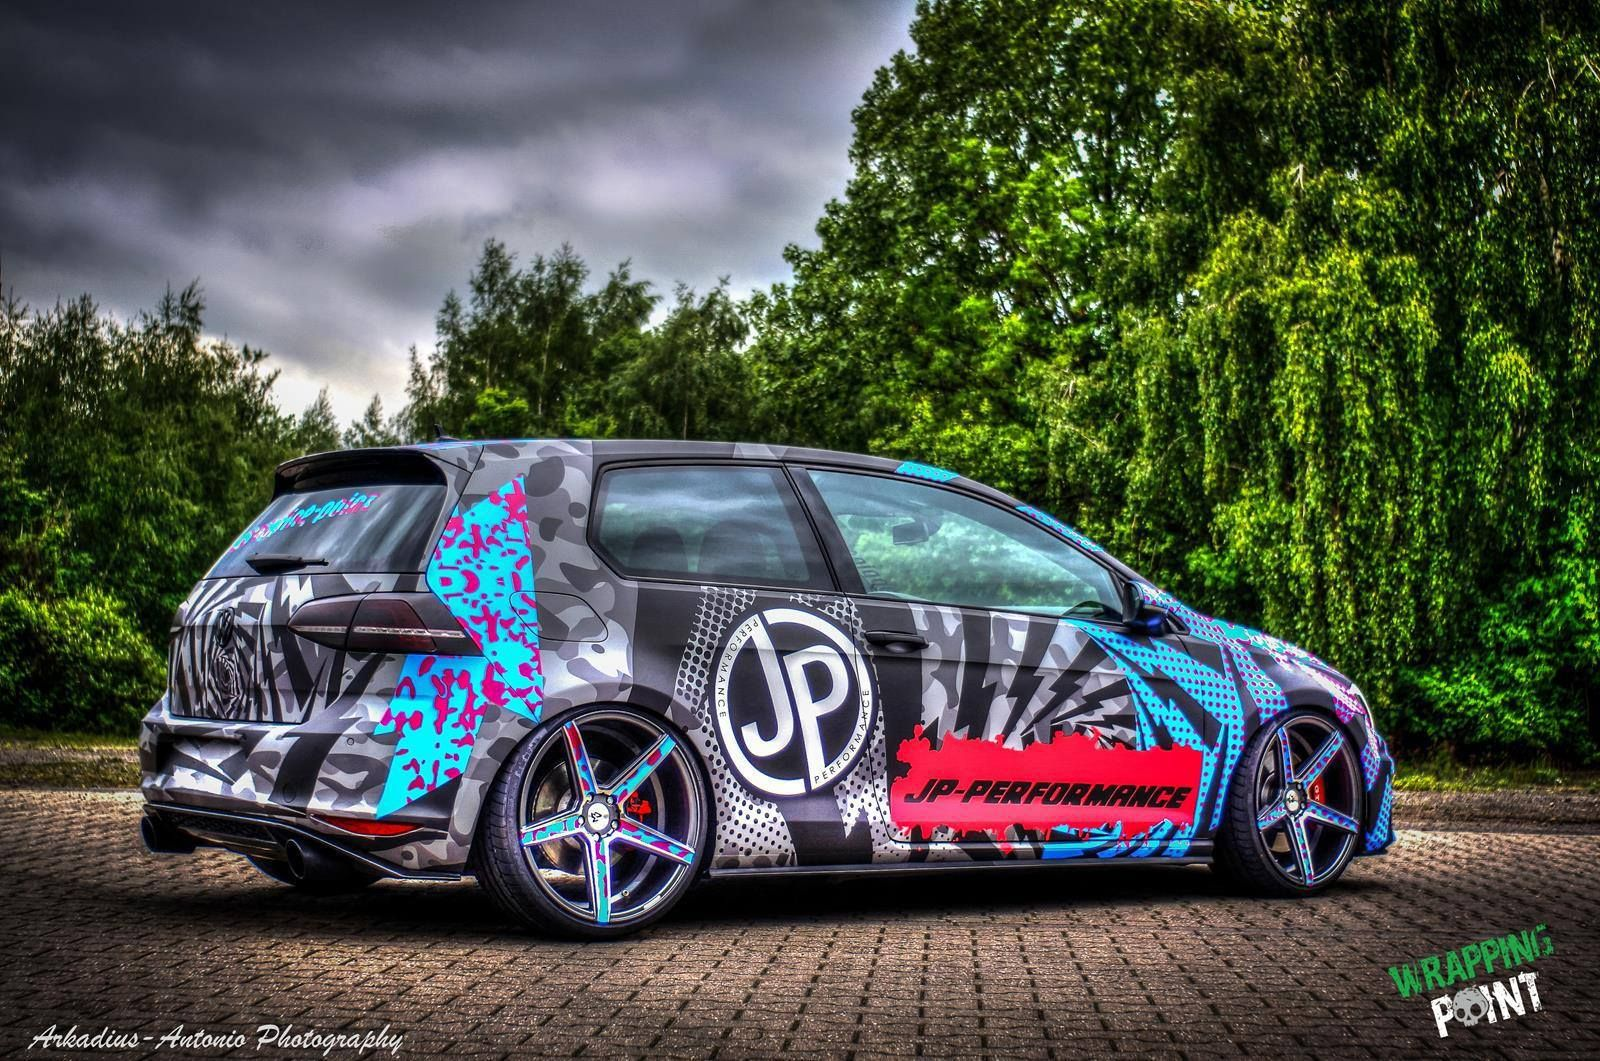 jp performance gti wrap wrapfolio yoo wrap pinterest wraps vw and cars. Black Bedroom Furniture Sets. Home Design Ideas